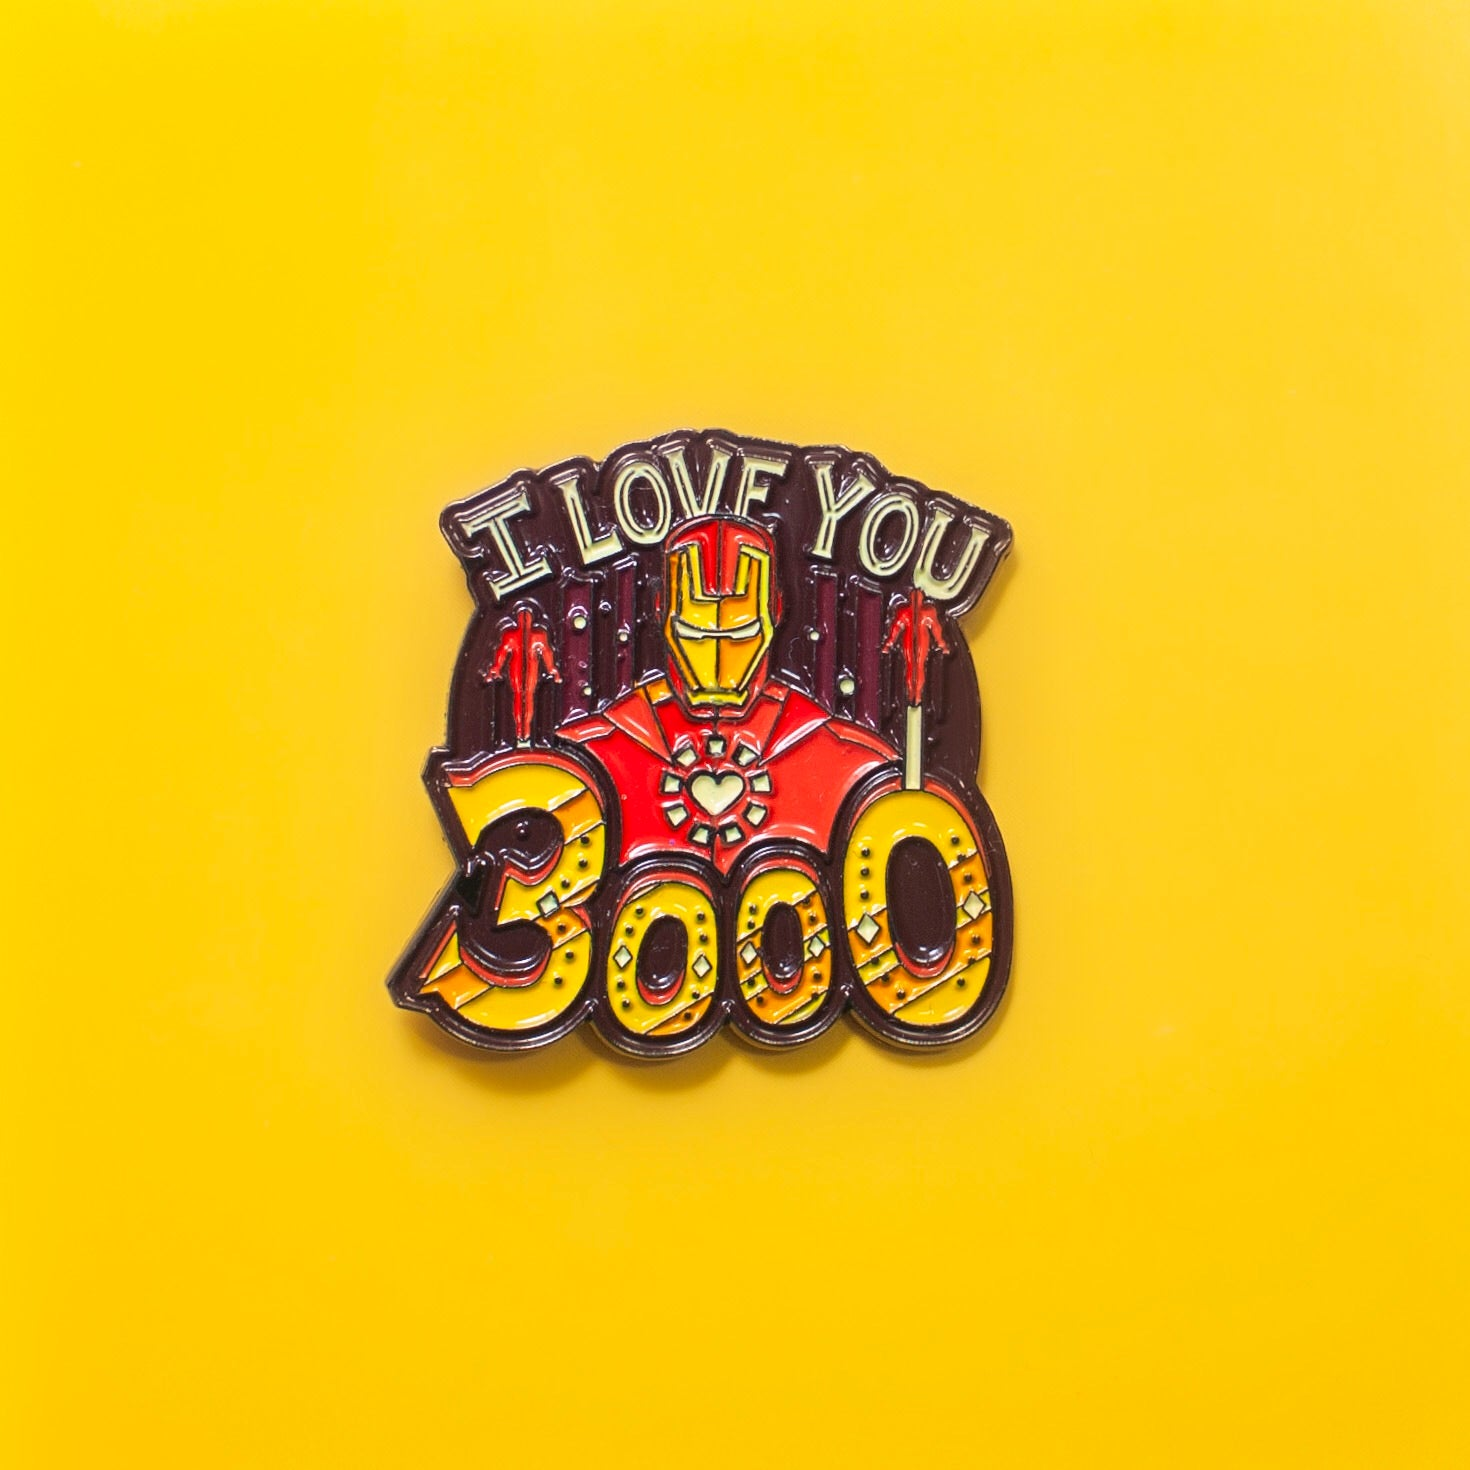 I LOVE YOU 3000 PIN - GeekPins